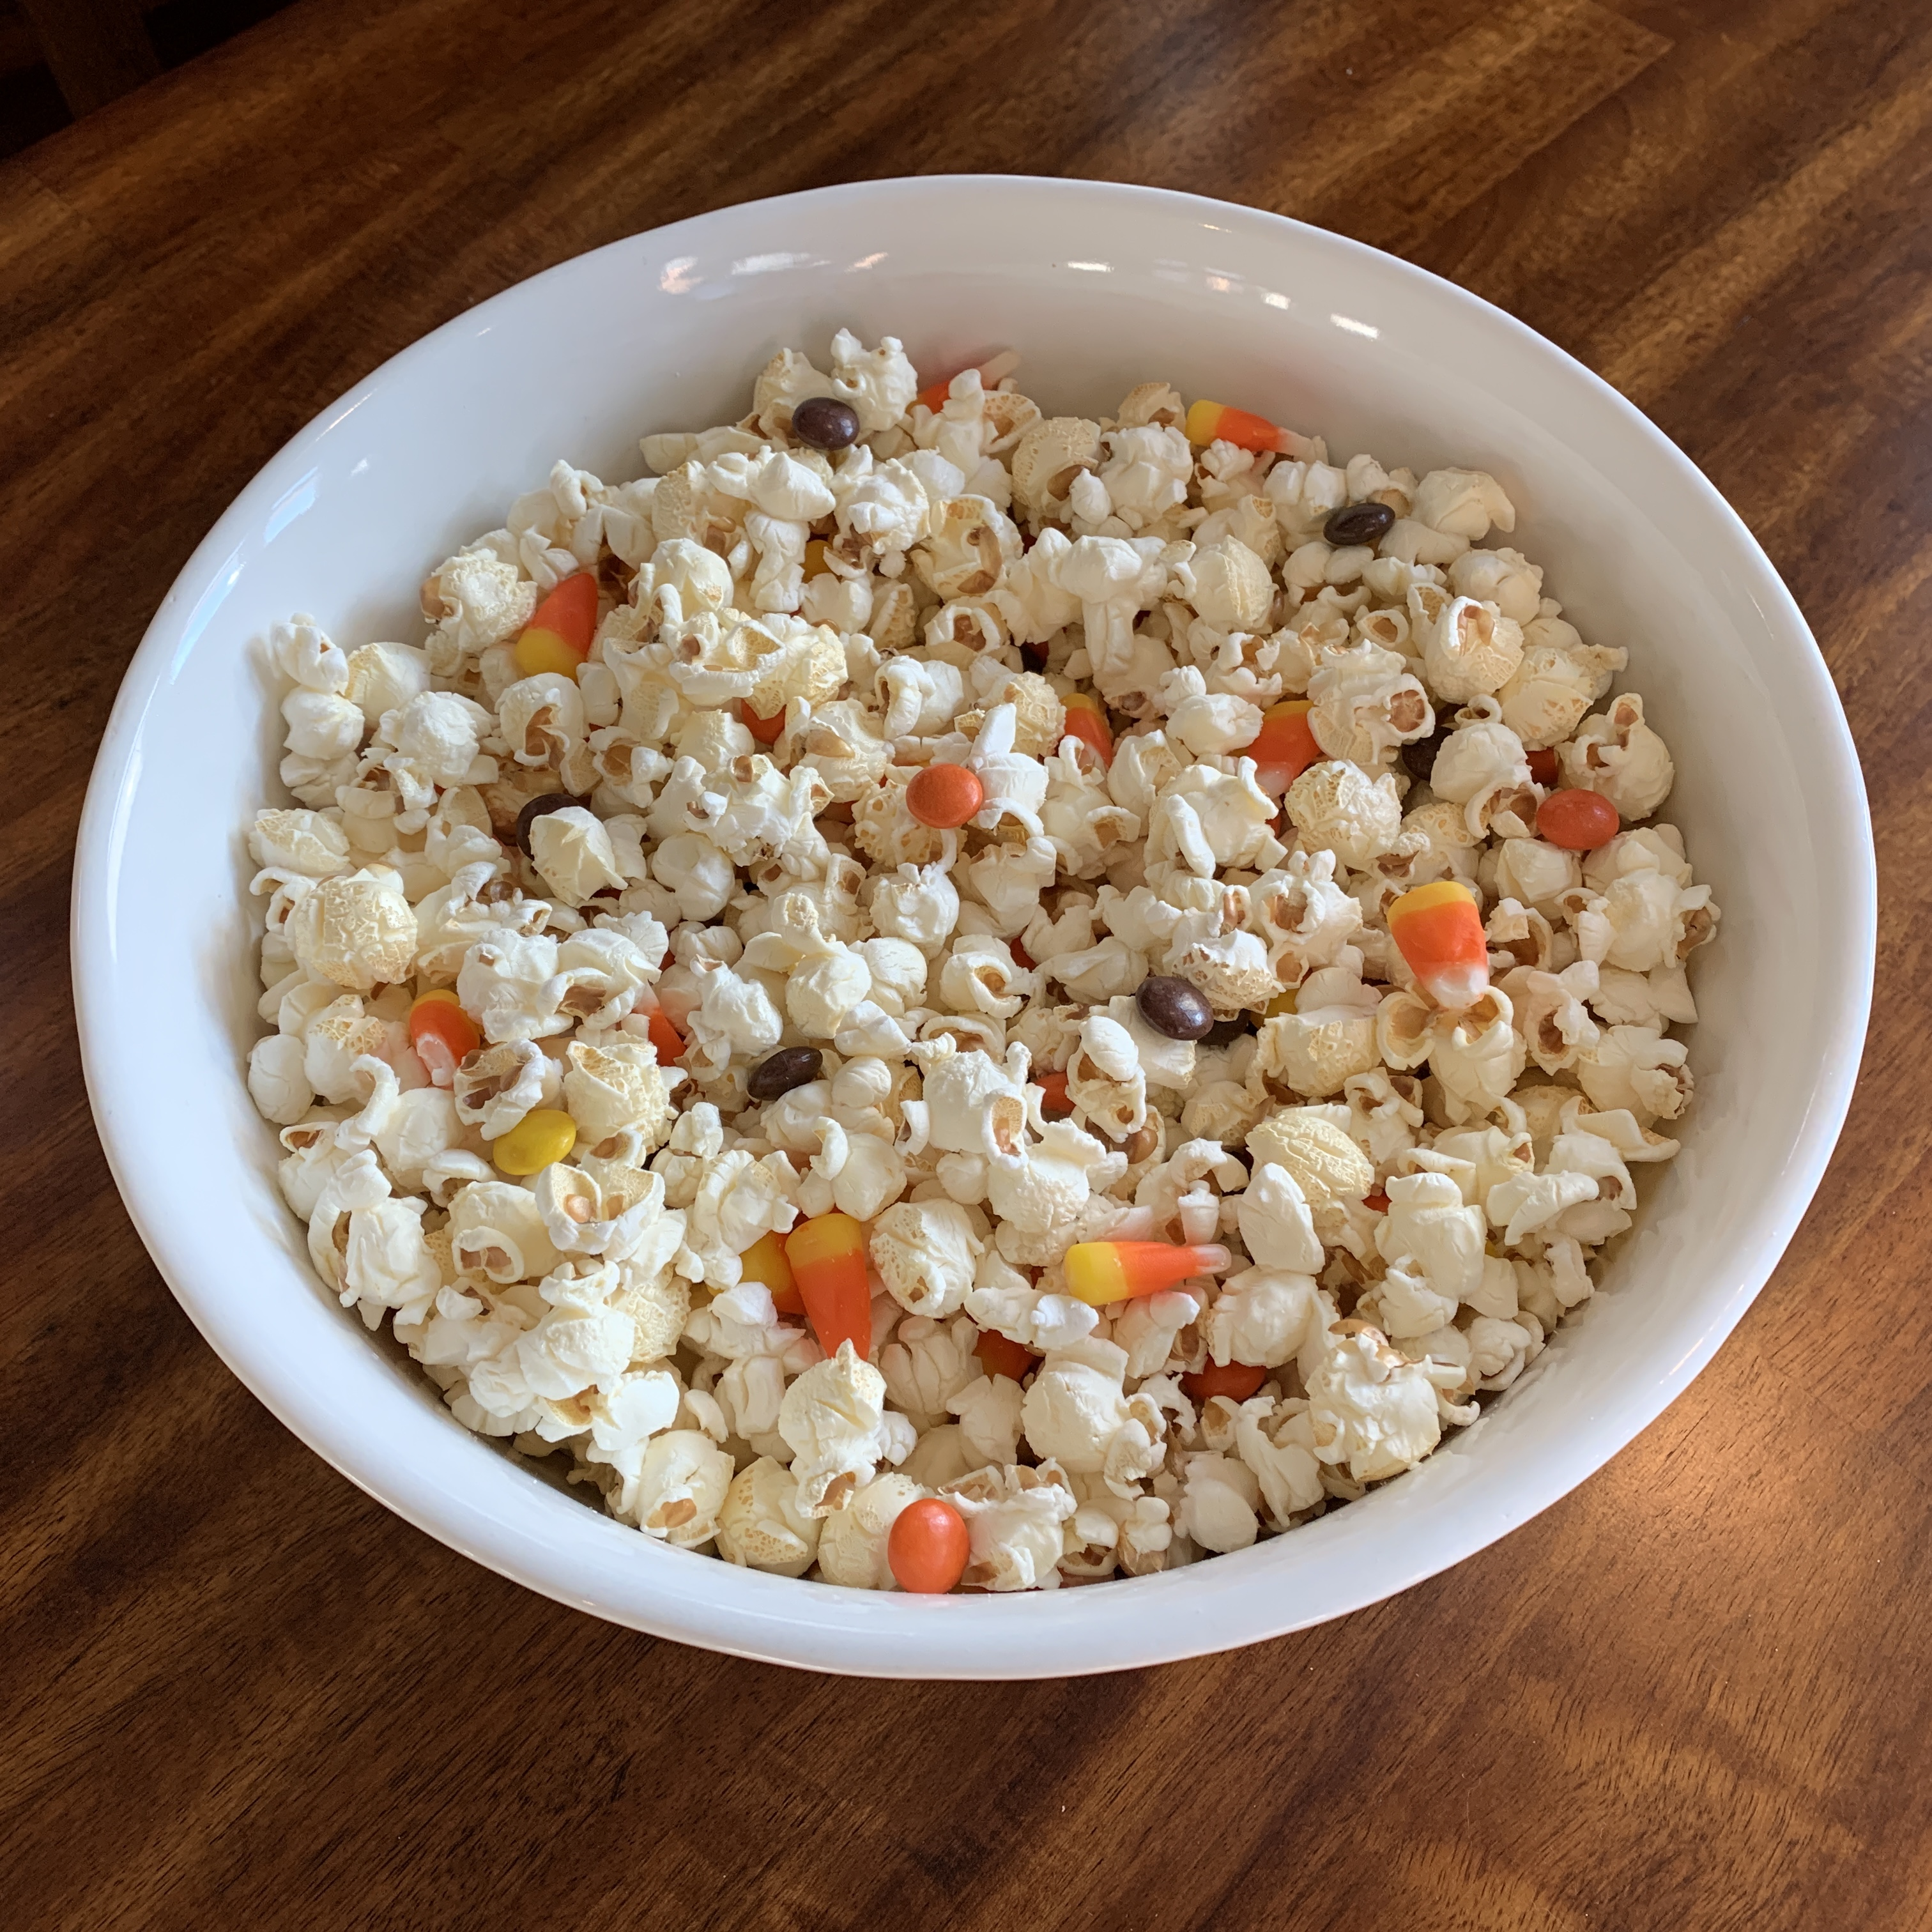 popcorn mixed with candy corn and orange, brown, and yellow candy pieces filled with peanut butter